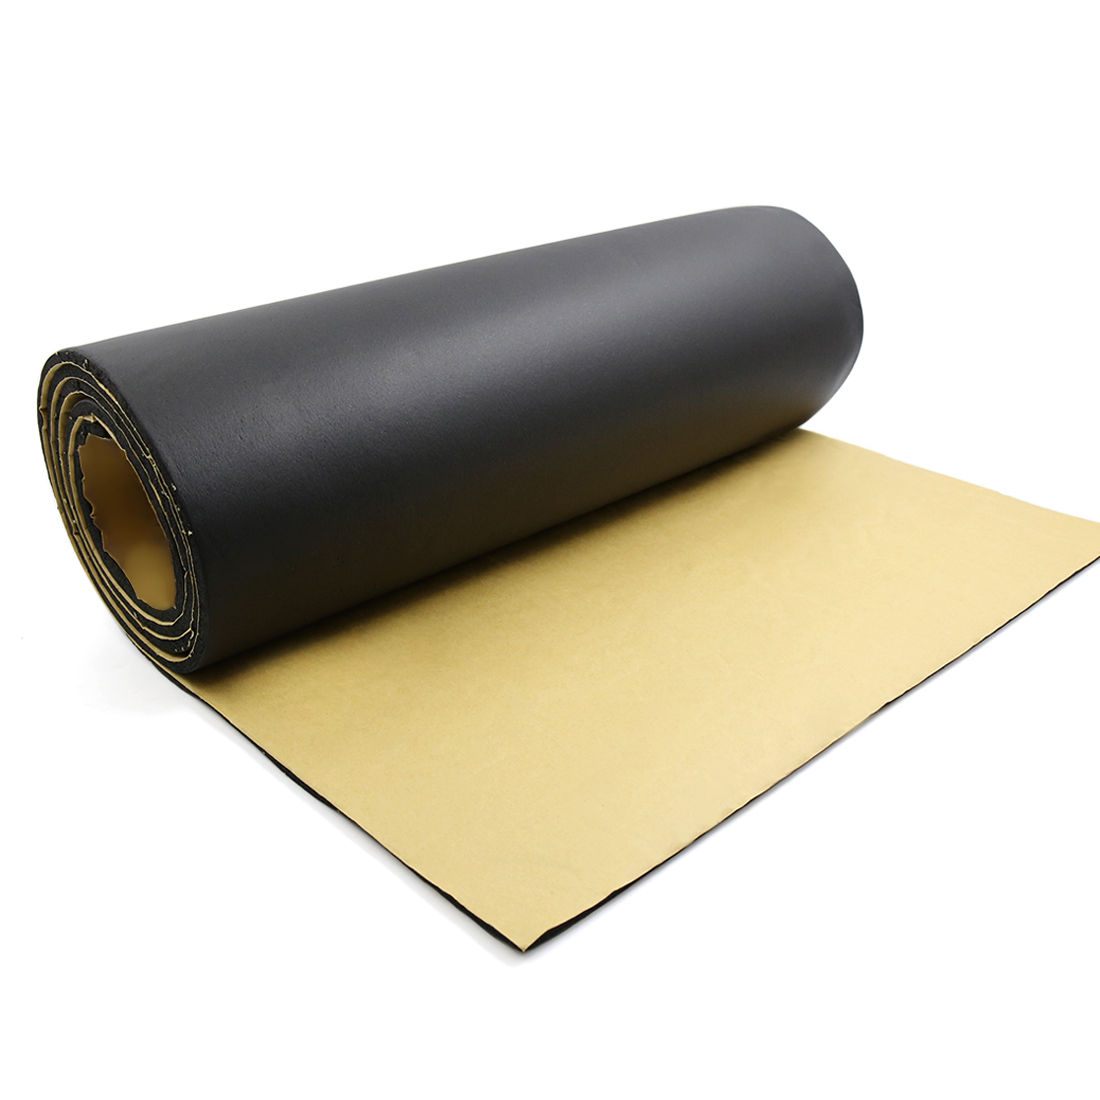 "197mil 5mm 32.29sqft Car Floor Tailgate Sound Insulation Deadener Mat 118"" x 40"""